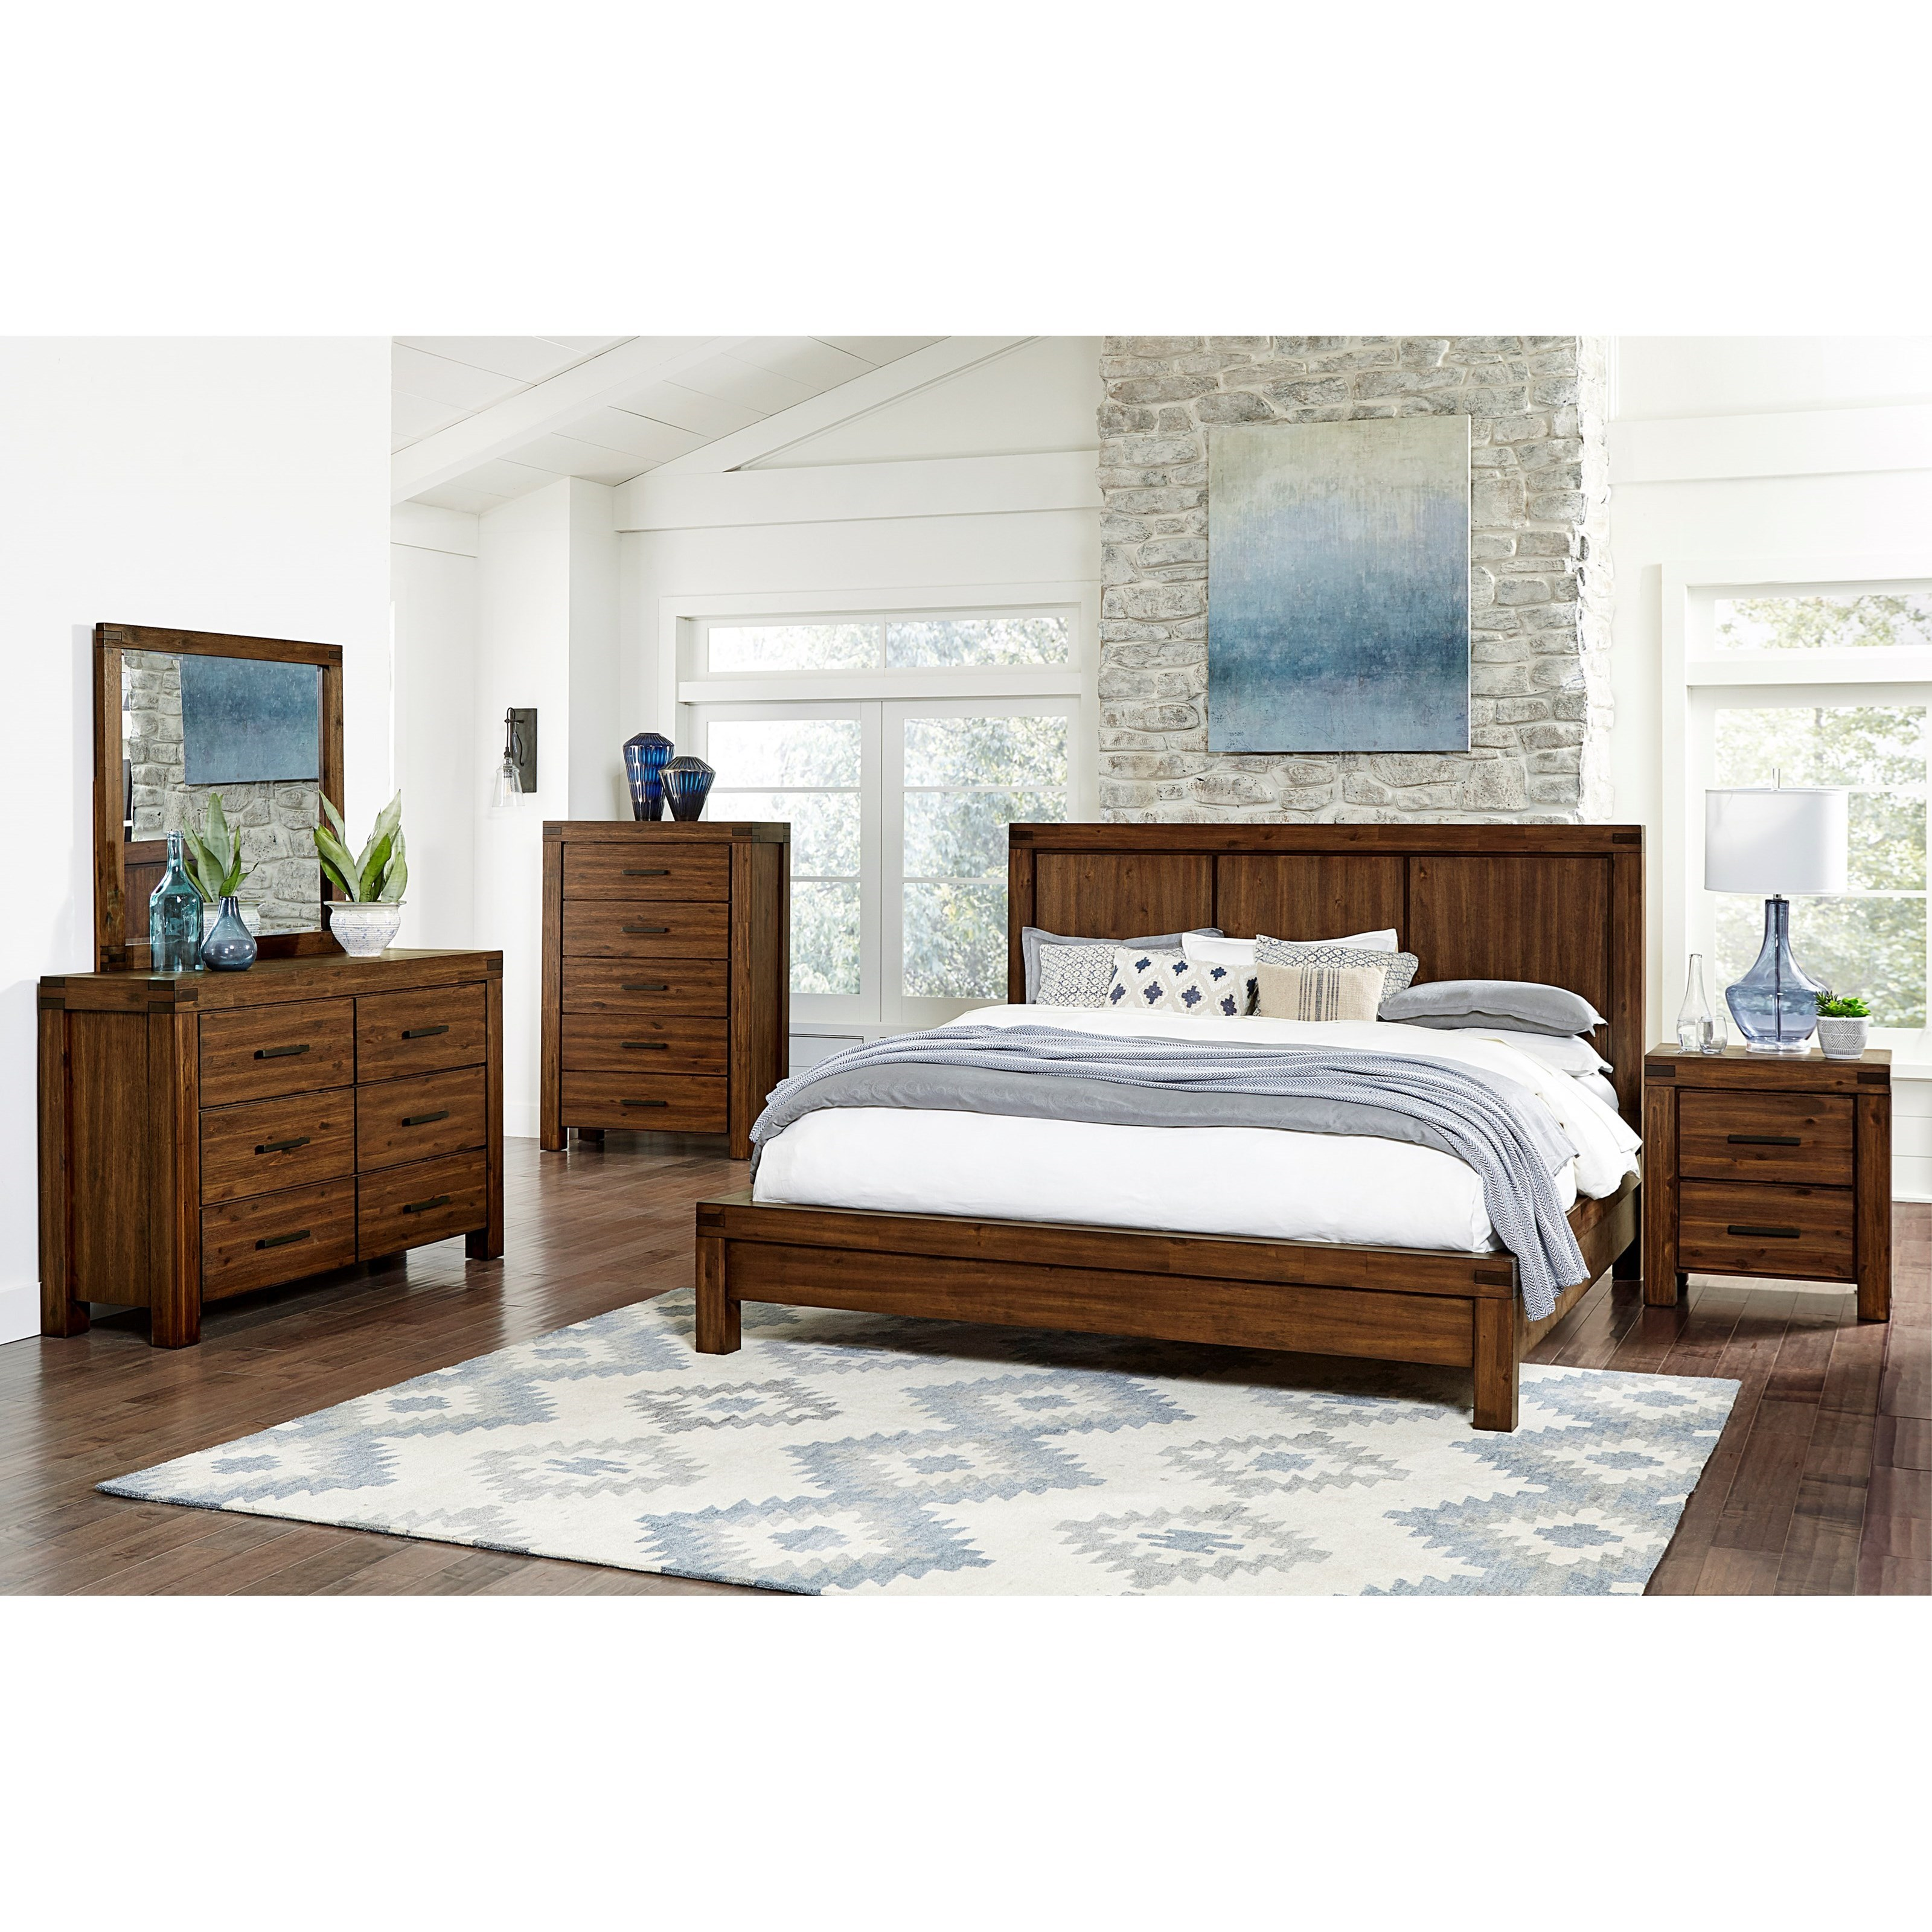 Arbor California King Bedroom Group by Standard Furniture at Beds N Stuff